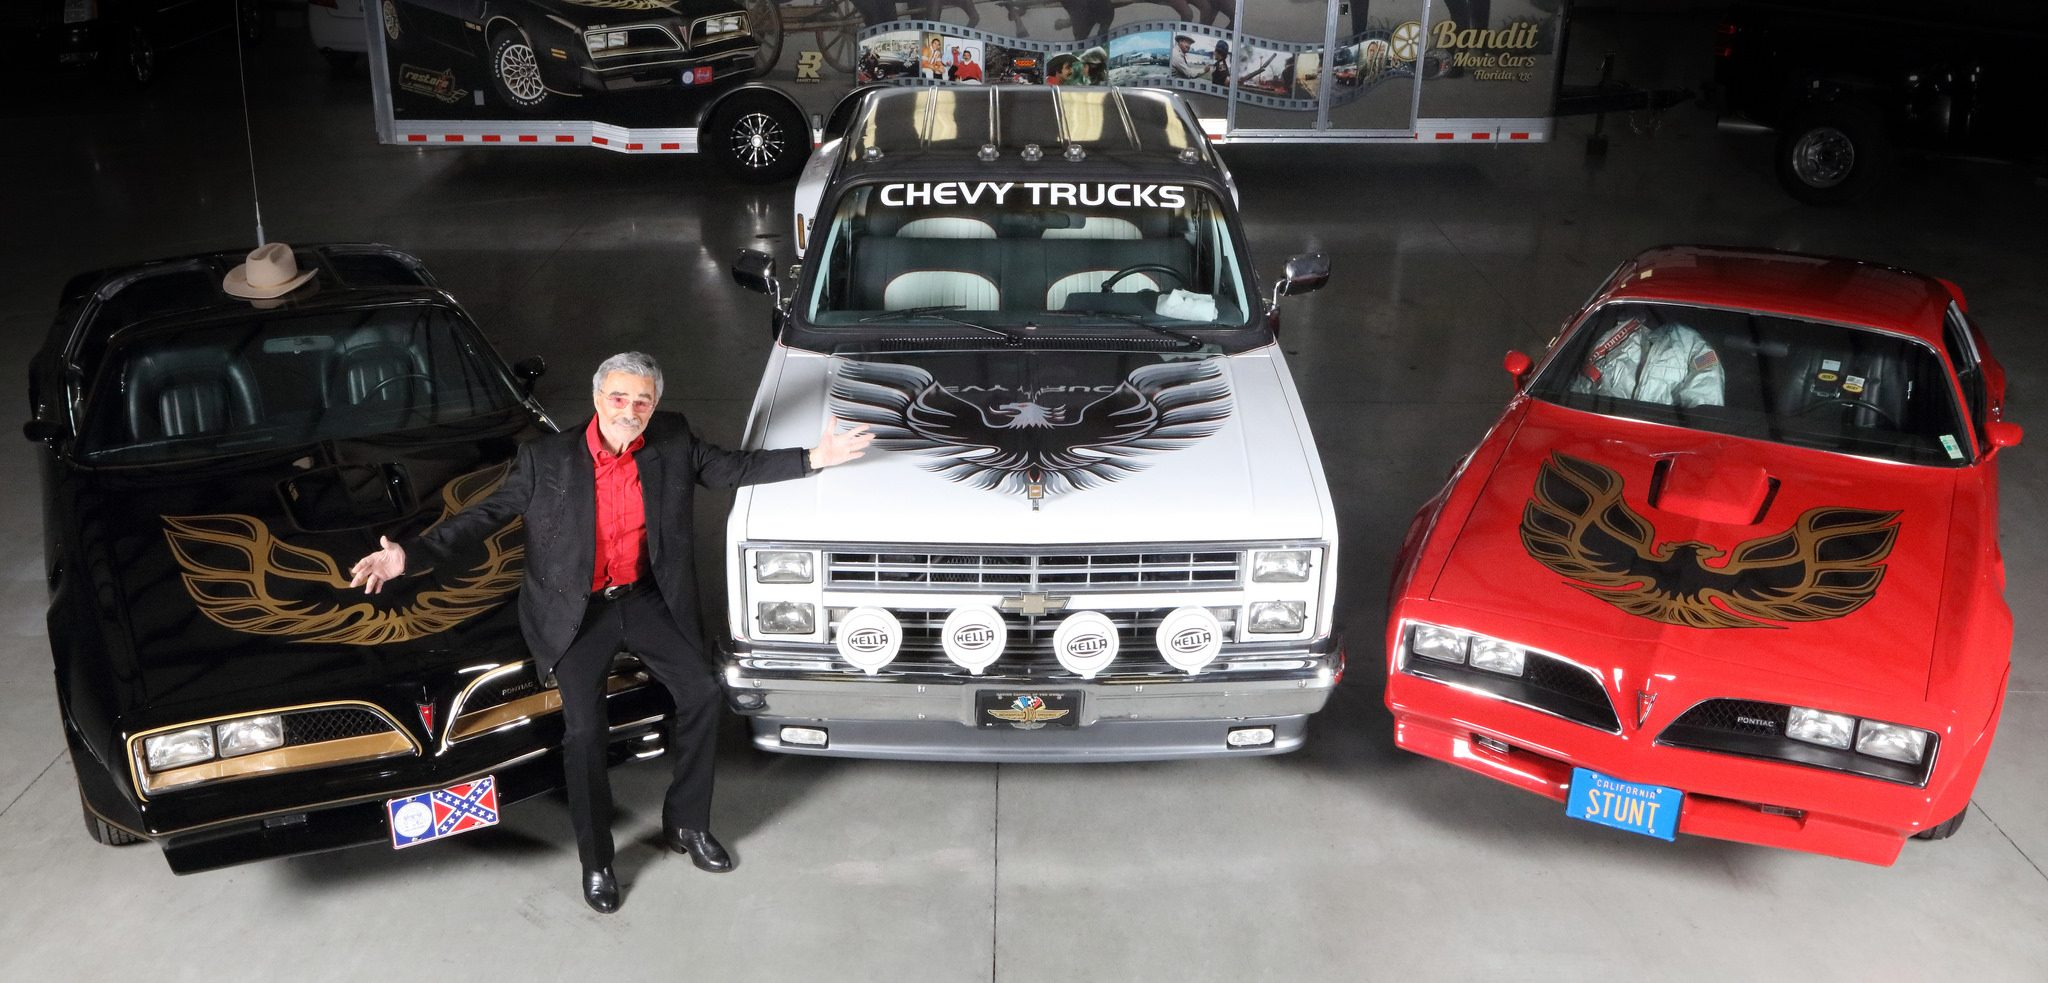 The Last Cars From Burt Reynolds' Personal Collection Could Be Yours